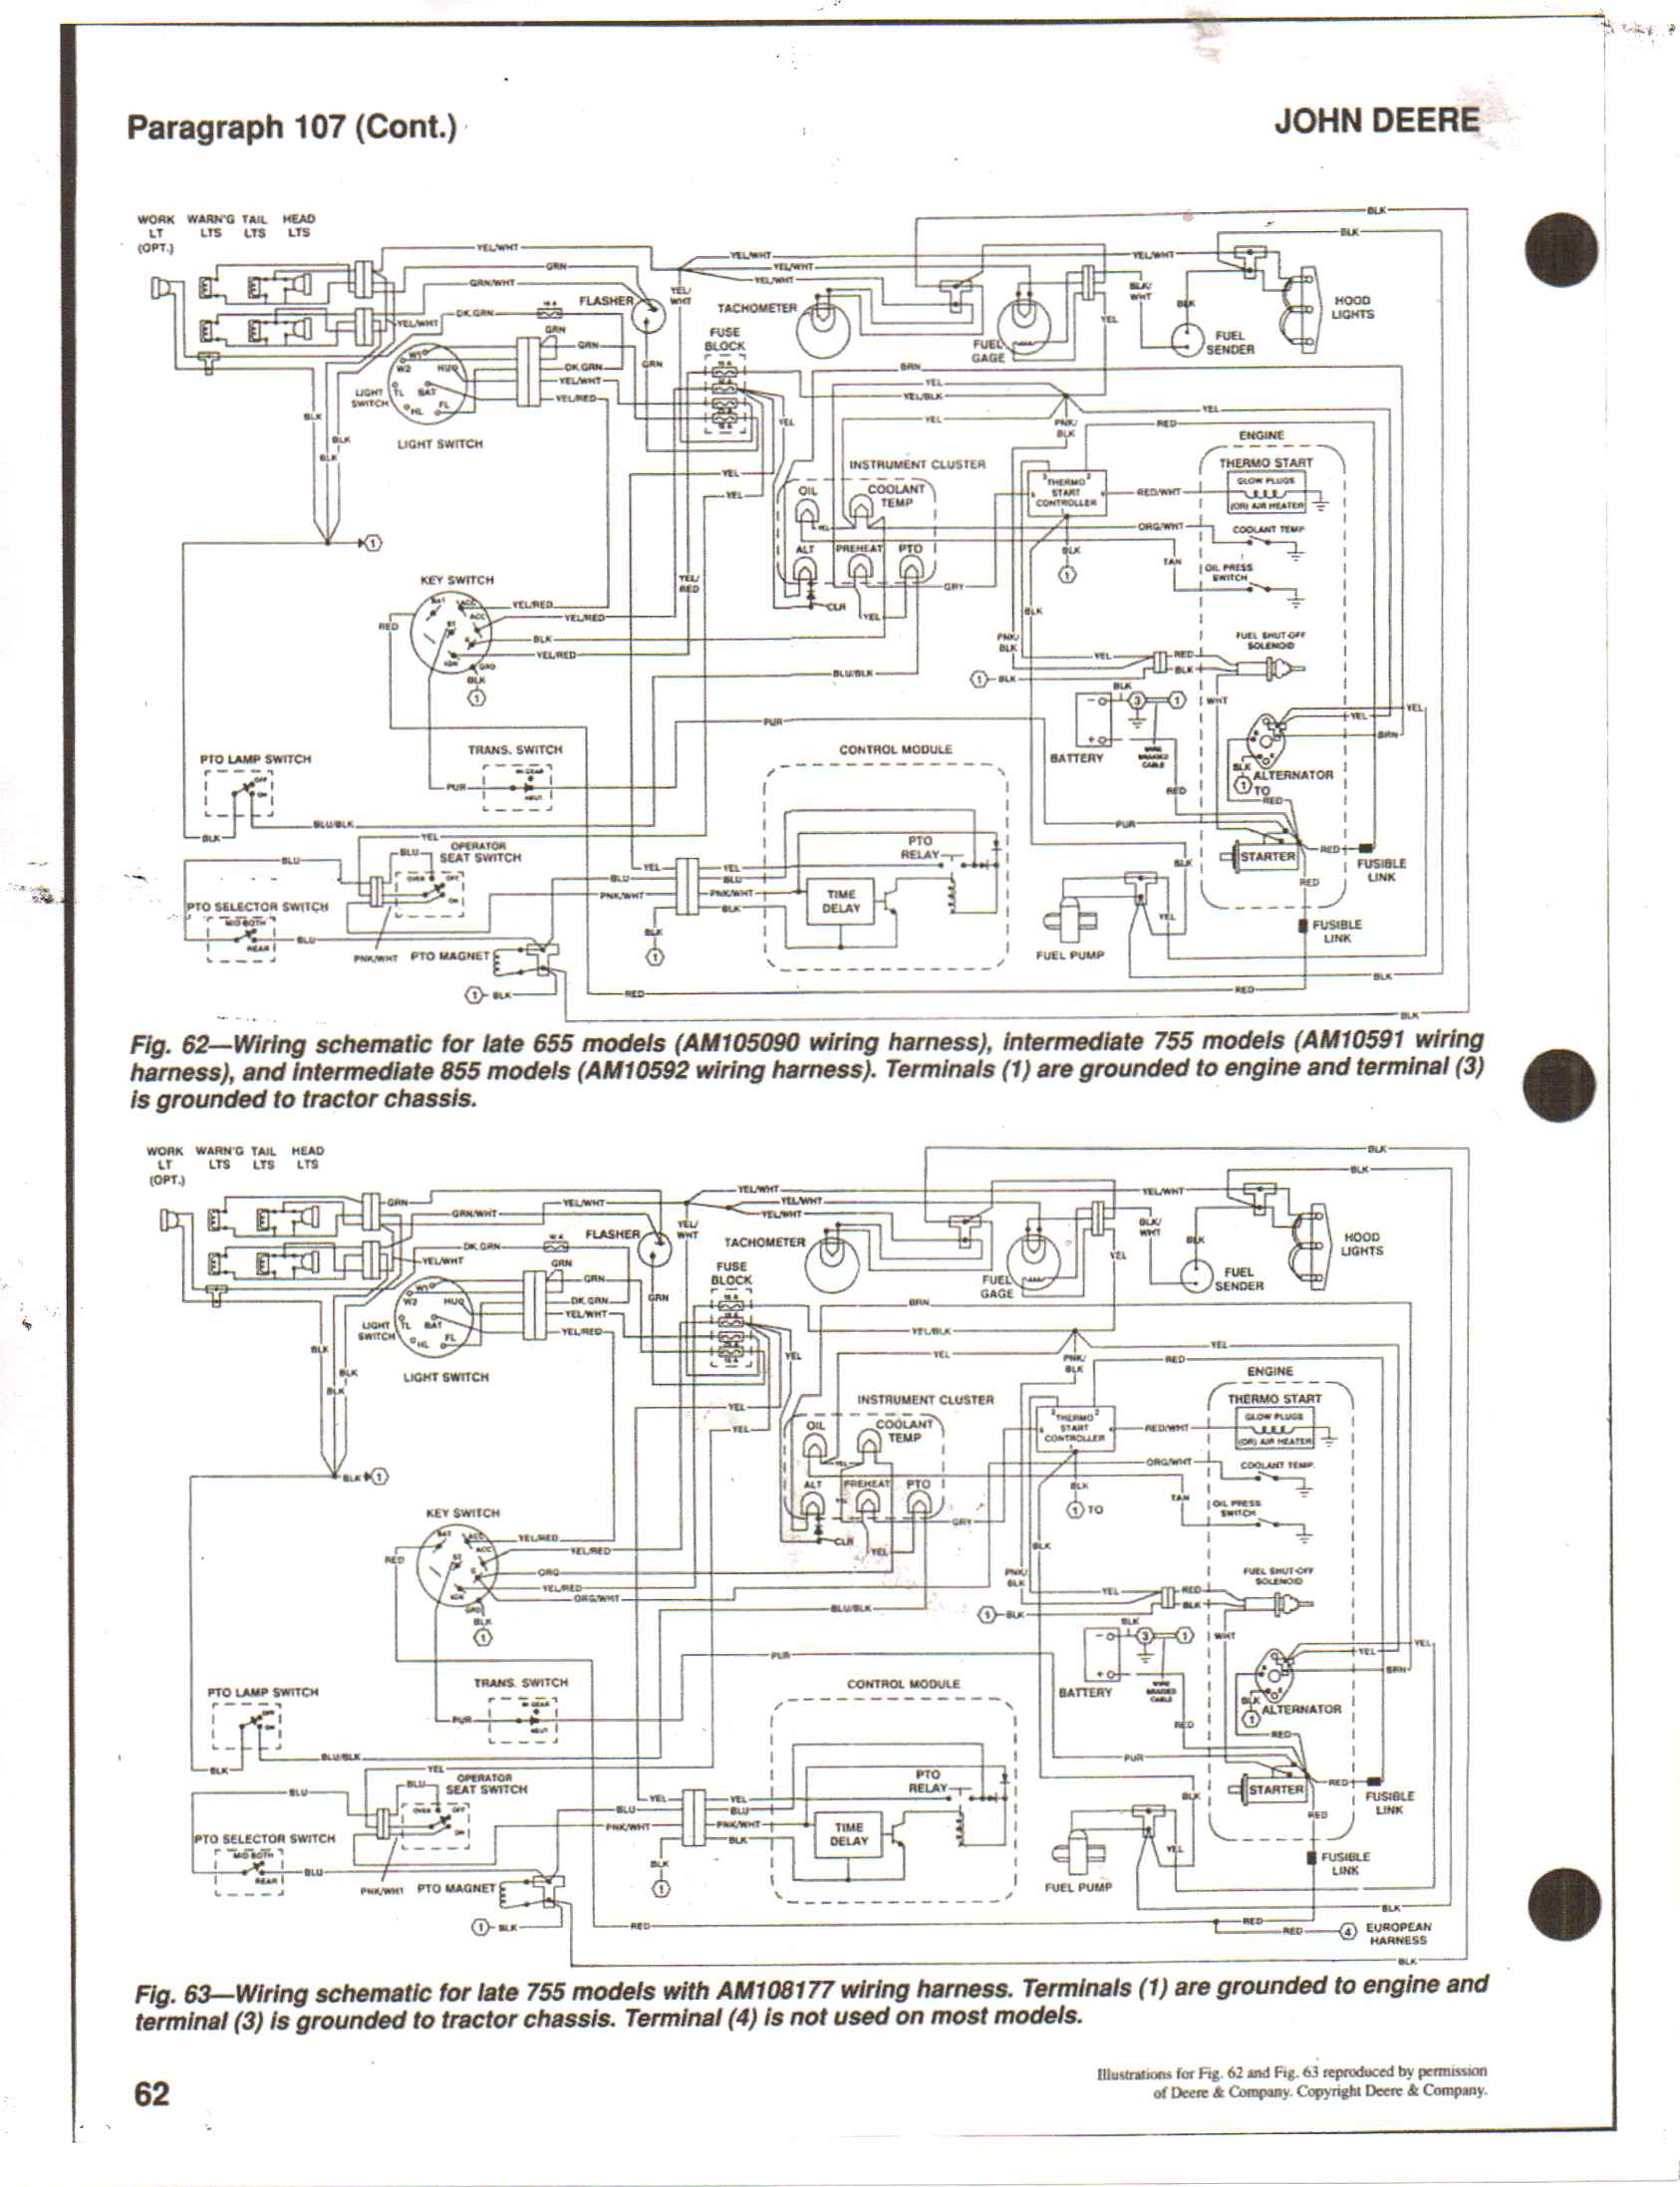 John Deere 720 Diesel Wiring Diagram Opinions About 2240 Schematics Free Vehicle Diagrams U2022 Rh Kaphene Co 24 Volt 720d